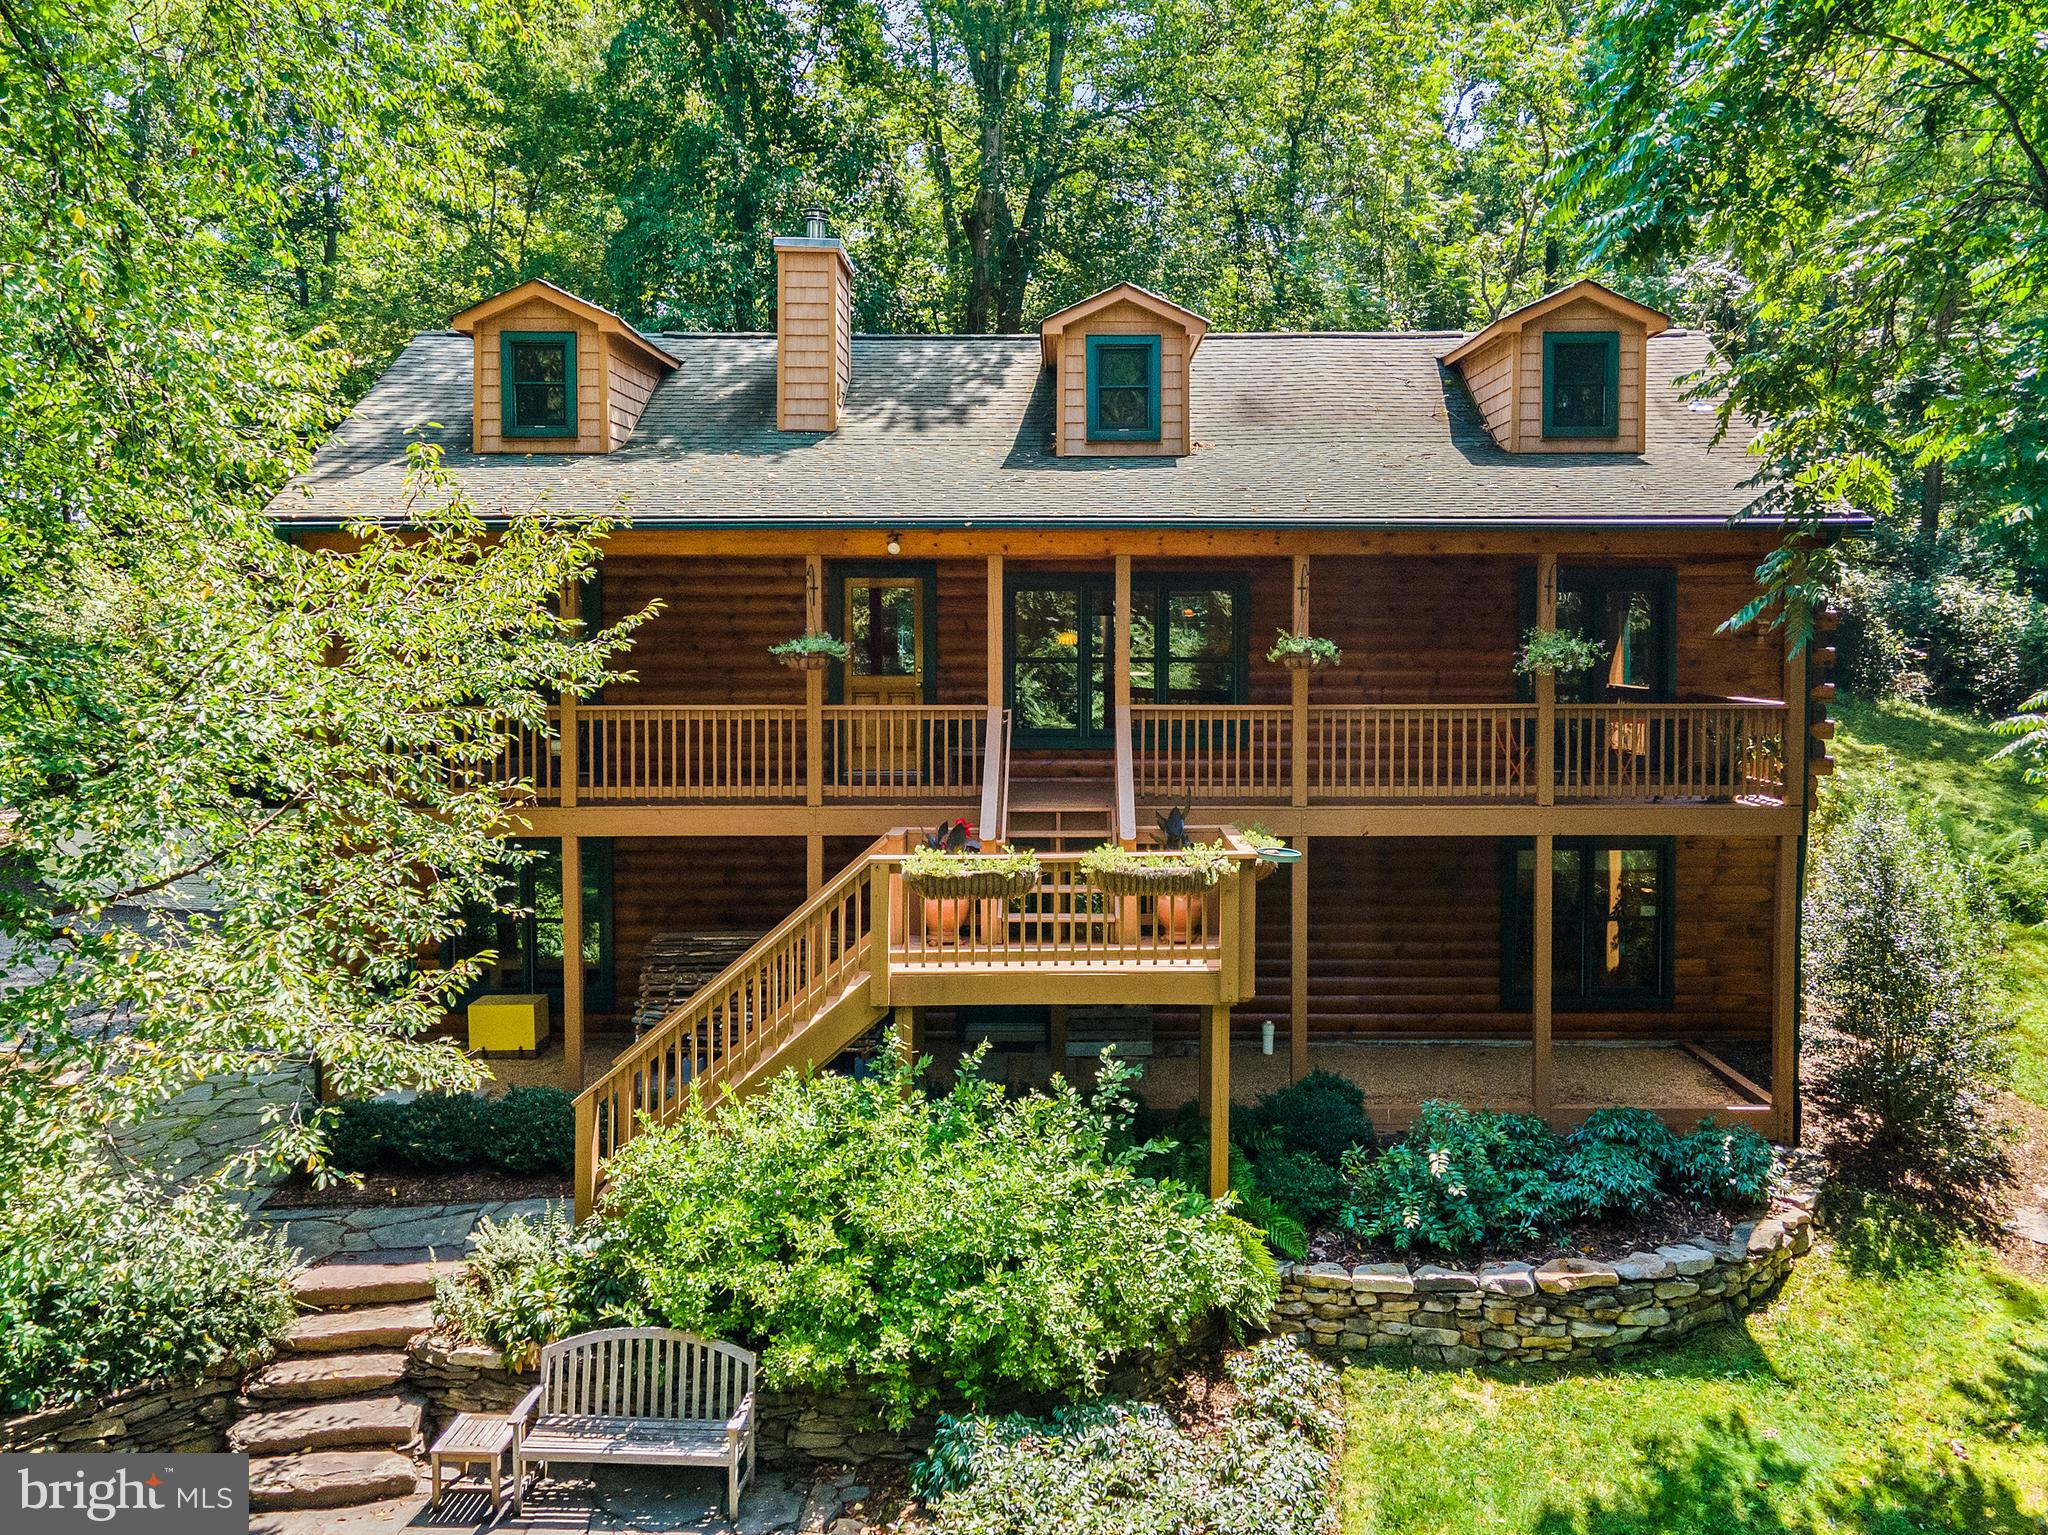 Custom log home  built in 2001 on 8+ Acres available in coveted Delaplane, Virginia. Enjoy end-of-the-road privacy and tranquility with the convenience of being within minutes of Historic Main Street, Marshall, VA and several wineries.  This home offers an Owner's suite, three additional bedrooms and three full bathrooms. Open concept great room and kitchen combination with cathedral ceilings. The main level porch awaits as you enjoy the view of the professionally designed with pollinators in mind and installed landscaping with drip irrigation system.  Additionally thoughtful features: High Speed Cellular Internet through T-Mobile 4G LTE (5G is on its way); Fenced animal proof 20' x 20' garden; Whole-House Surge Protector (Renewable, meaning it has modules that can be replaced if they fail - cheap systems aren't like this); Garage/Shop with extensive lighting and many additional electrical circuits; Kinetico Water Neutralizer & Softener Systems; Rinnai tankless water heater; New Stainless Steel kitchen appliances; New Carpet Throughout; Fresh Paint Basement Level;  RSF Zero-Clearance Fireplace, 5-6 cord of wood from your own property heats the house all winter; Logs stained last year; Driveway graded & graveled this year; Spectacular Blue Ridge Views in Winter.